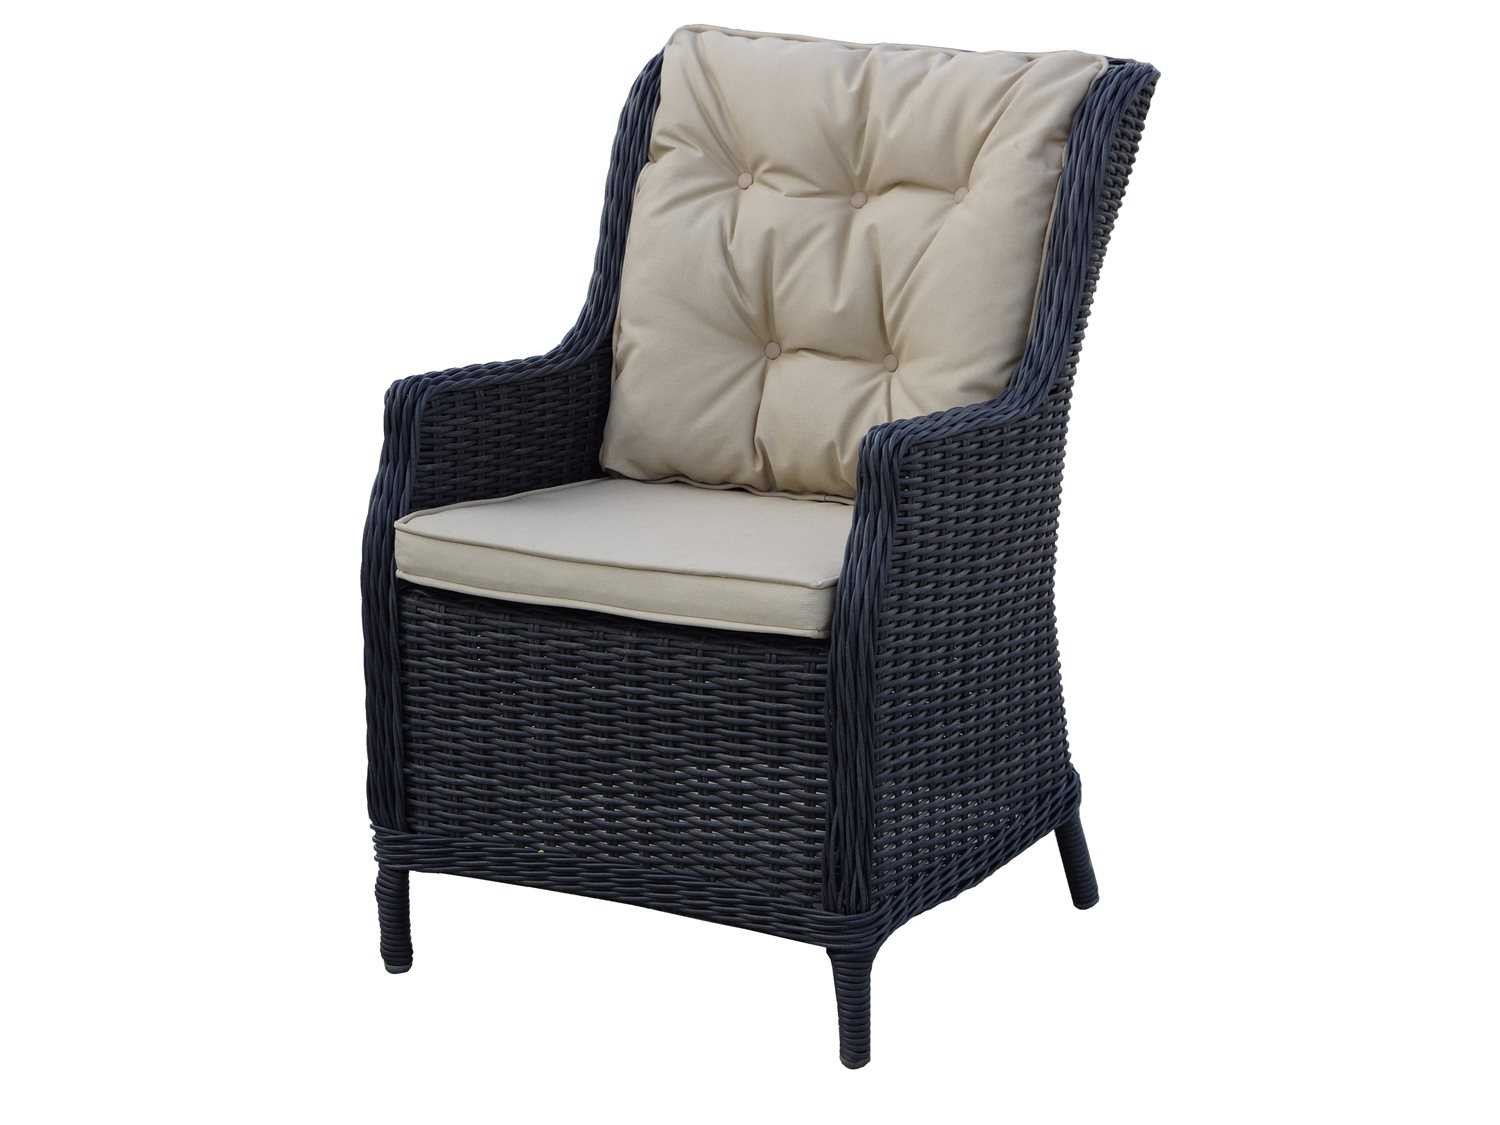 Darlee Outdoor Living Standard Valencia Dining Chair Seat & Back Cushio